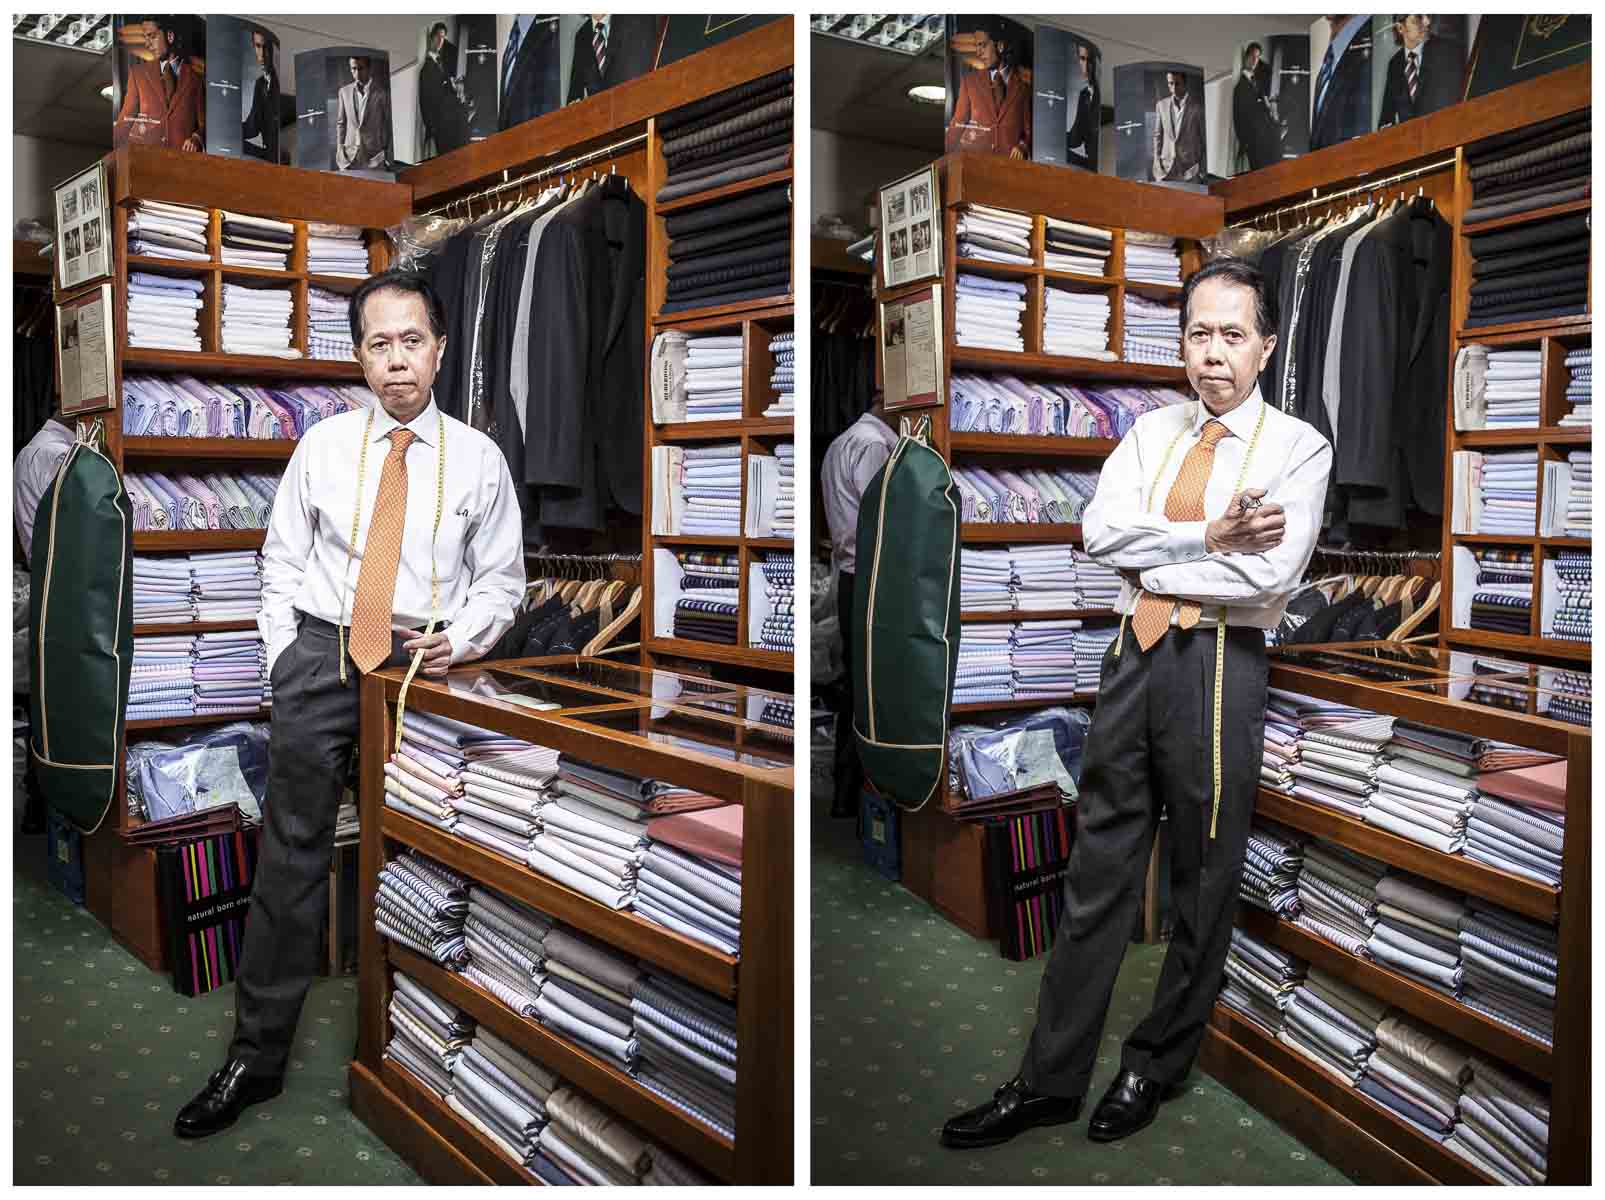 Environmental Portrait of a Tailor - 4.jpg